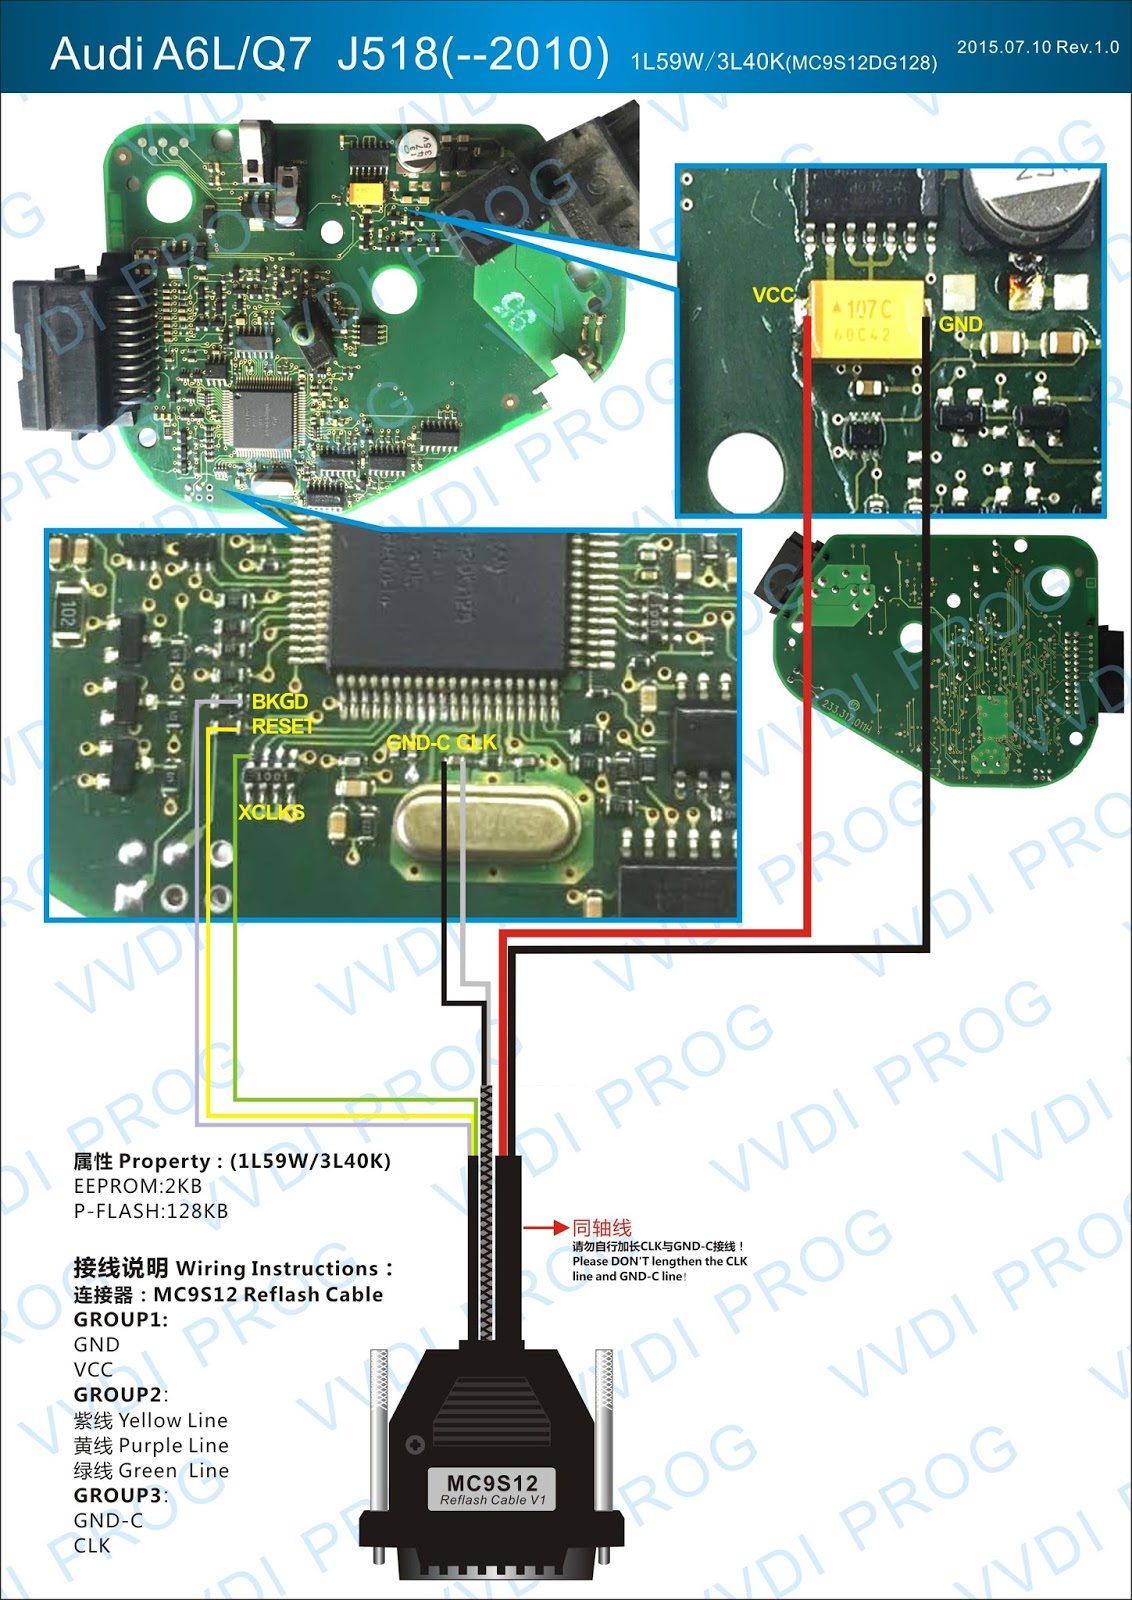 Obd port moreover lexus es obd connector location on car diagnostic - Vvdi Prog 4 4 0 Wiring Instruction